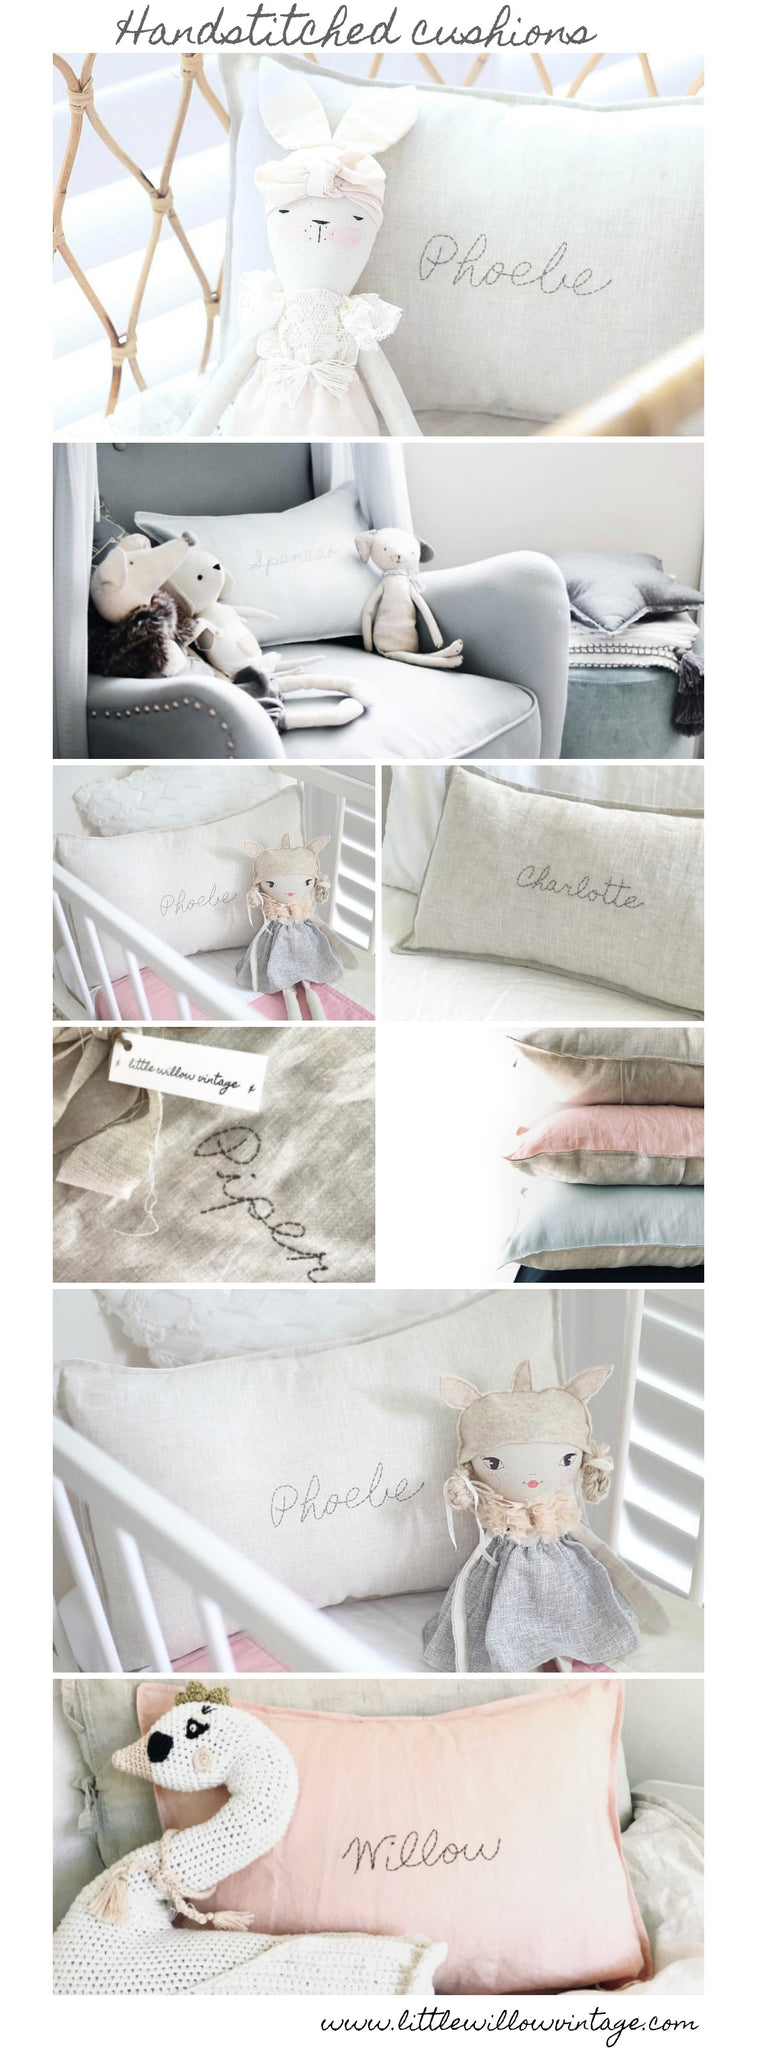 Handstitched linen cushions and pillows by Little Willow Vintage..baby wares inspired by simpler times. www.littlewillowvintage.com.au